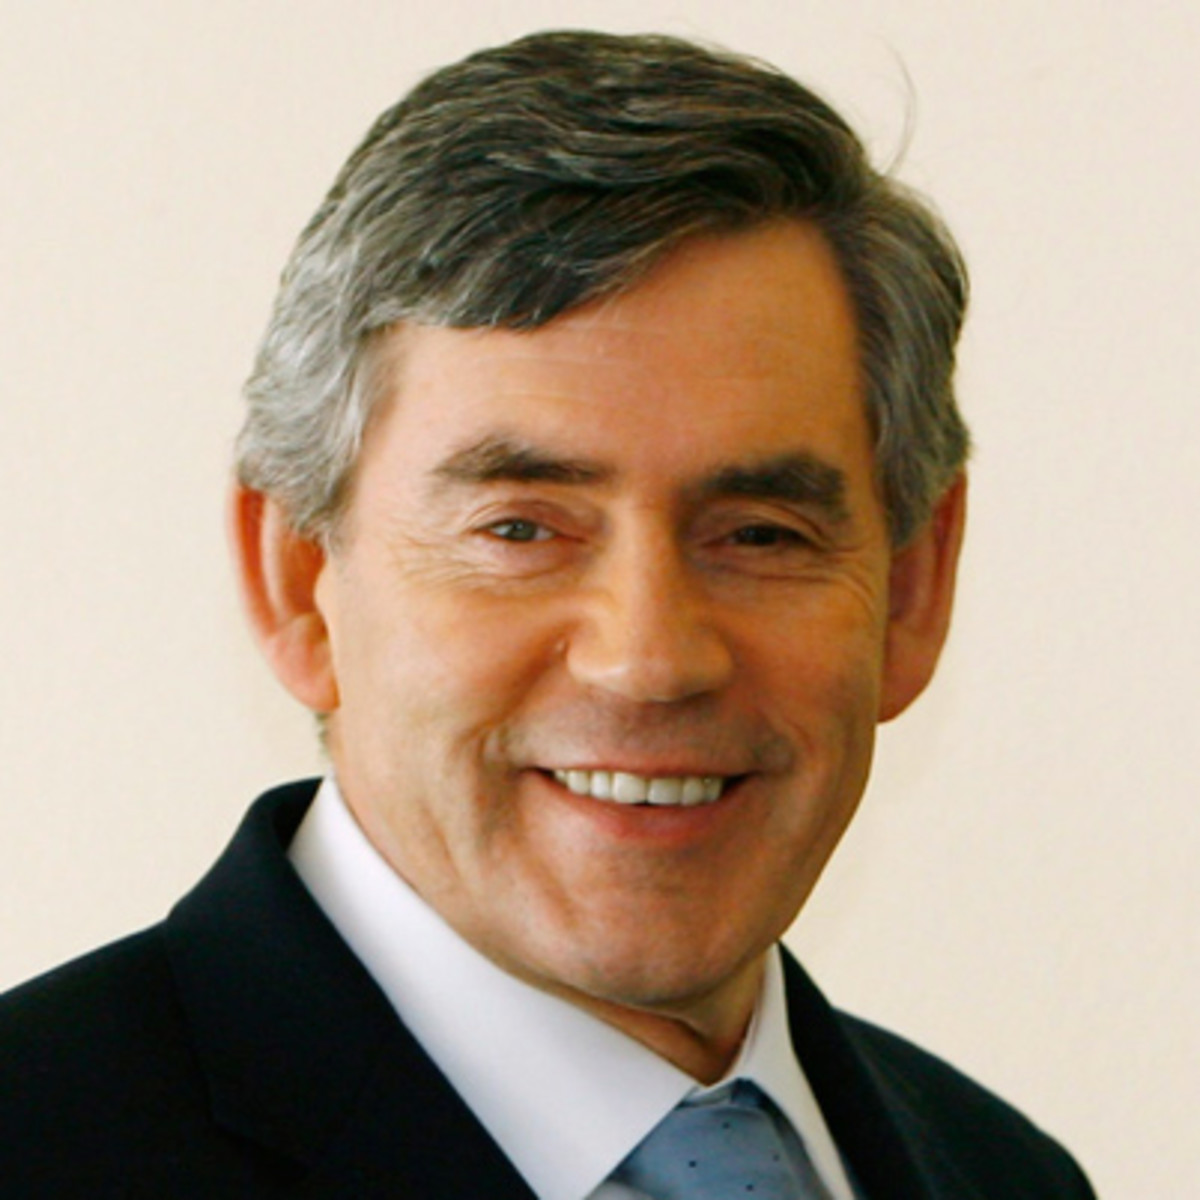 Gordon Brown enjoyed a close relationship with the Queen who occasionally imitated his Scottish accent.